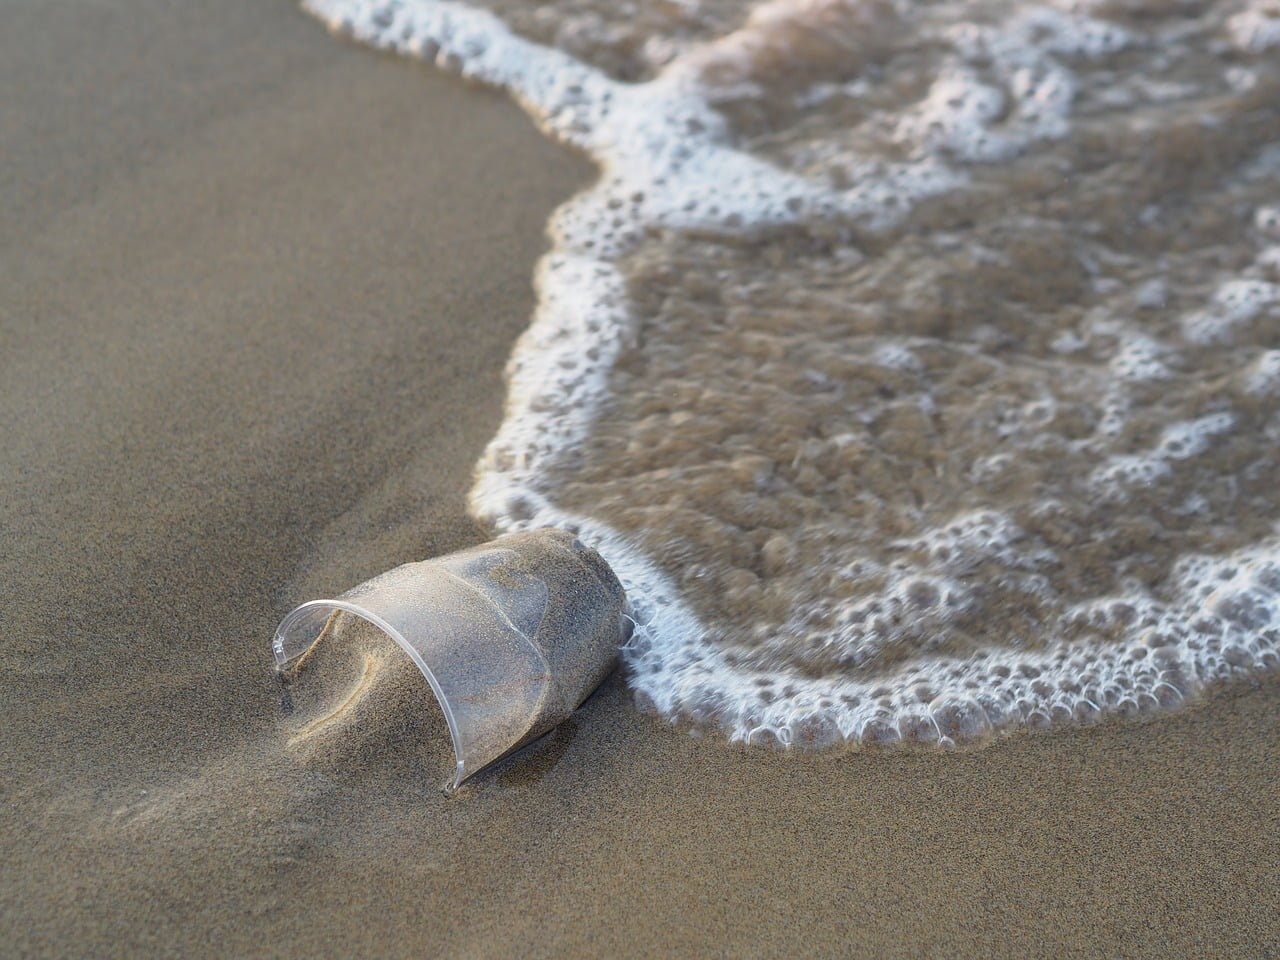 plastic cup garbage washed up on sandy beach